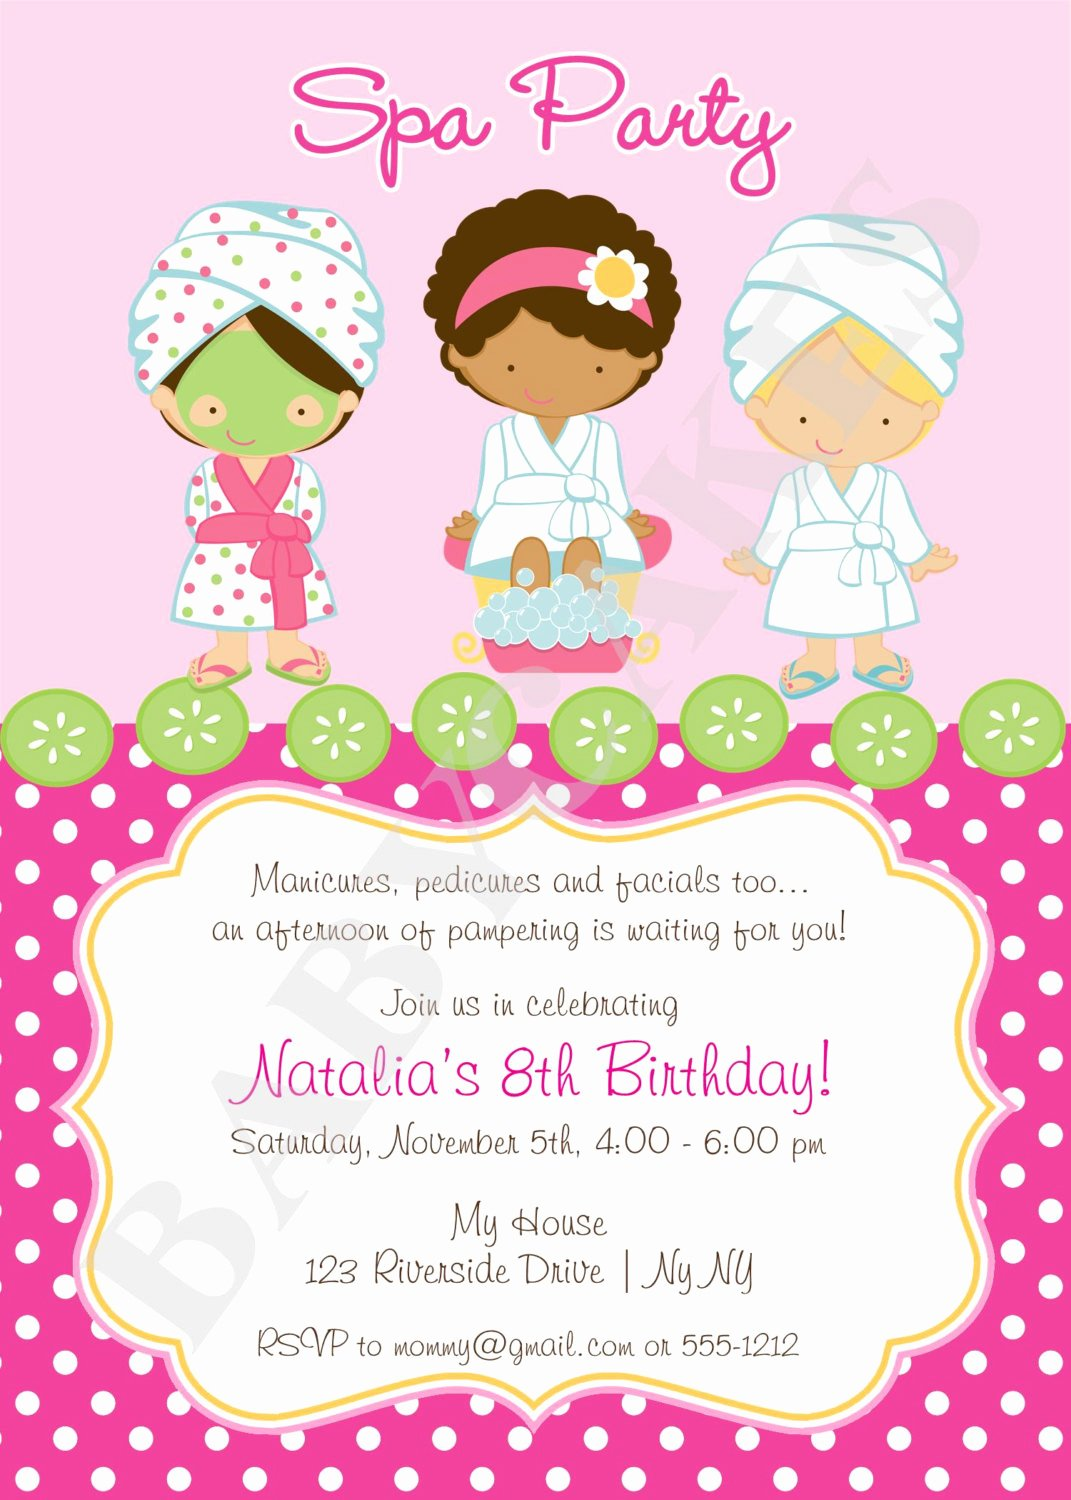 Free Spa Party Printables New Spa Party Invitation Diy Print Your Own Matching by